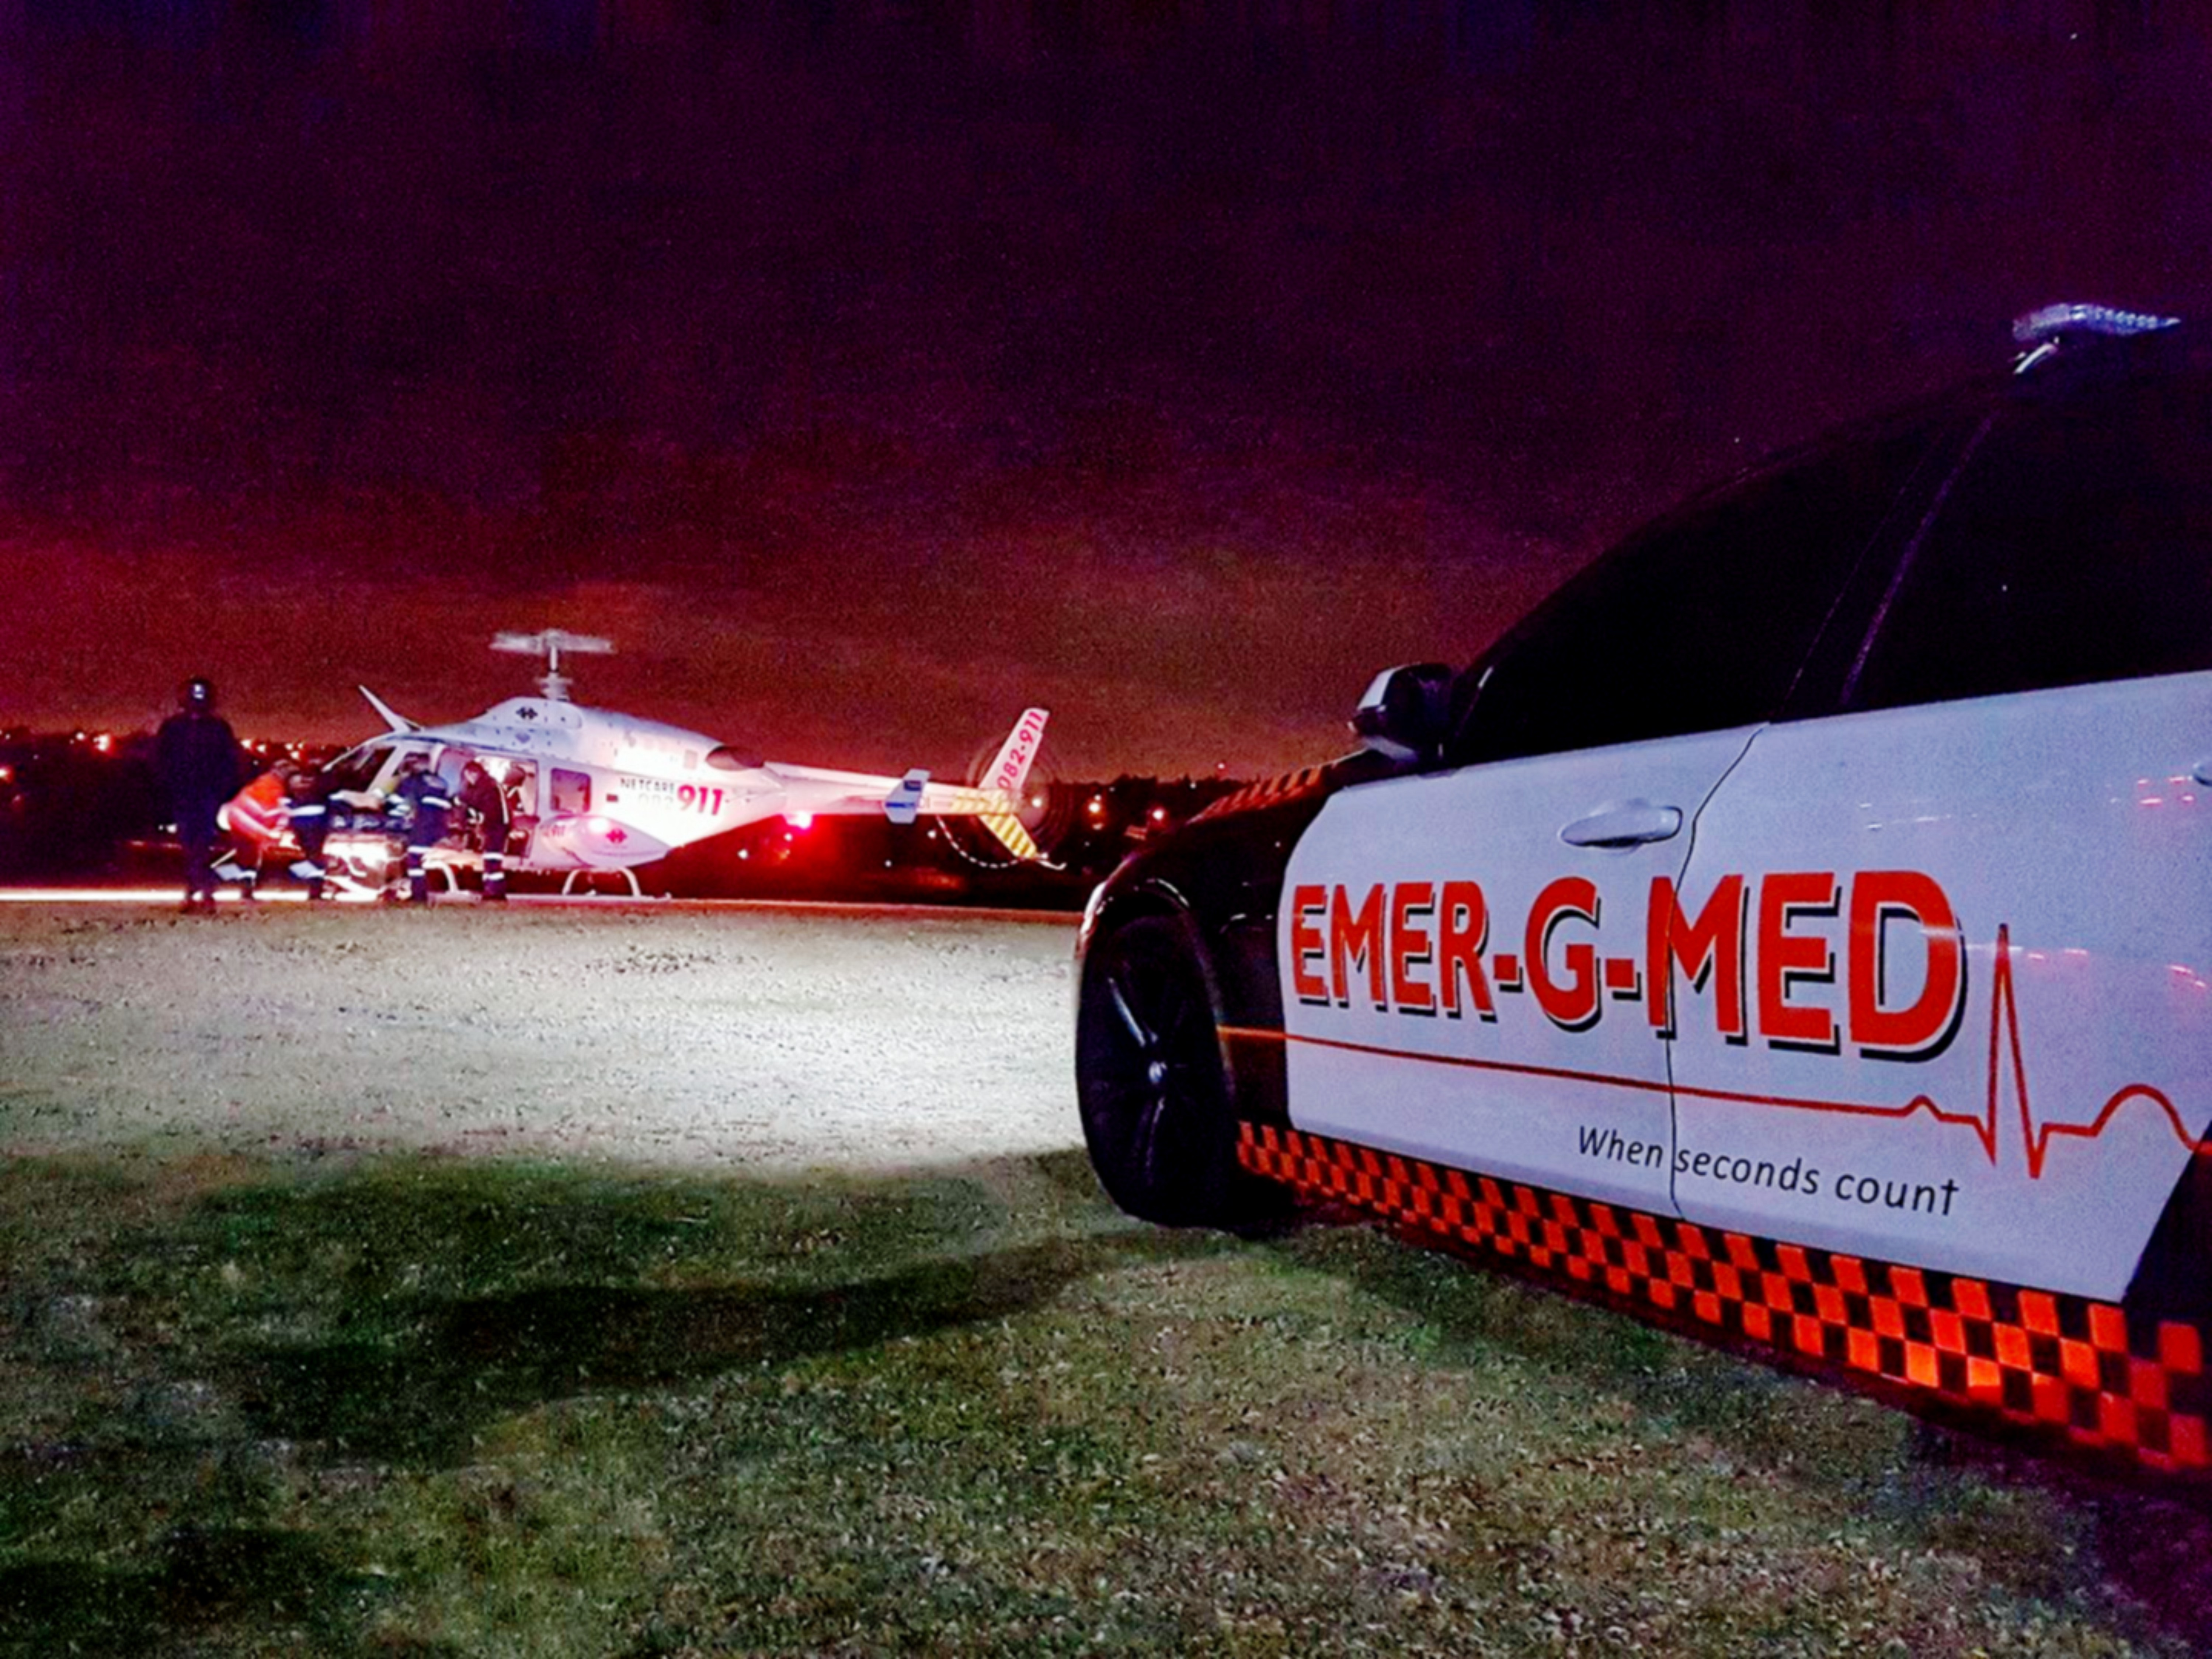 Emer-G-Med & Netcare 911 Air Ambulance